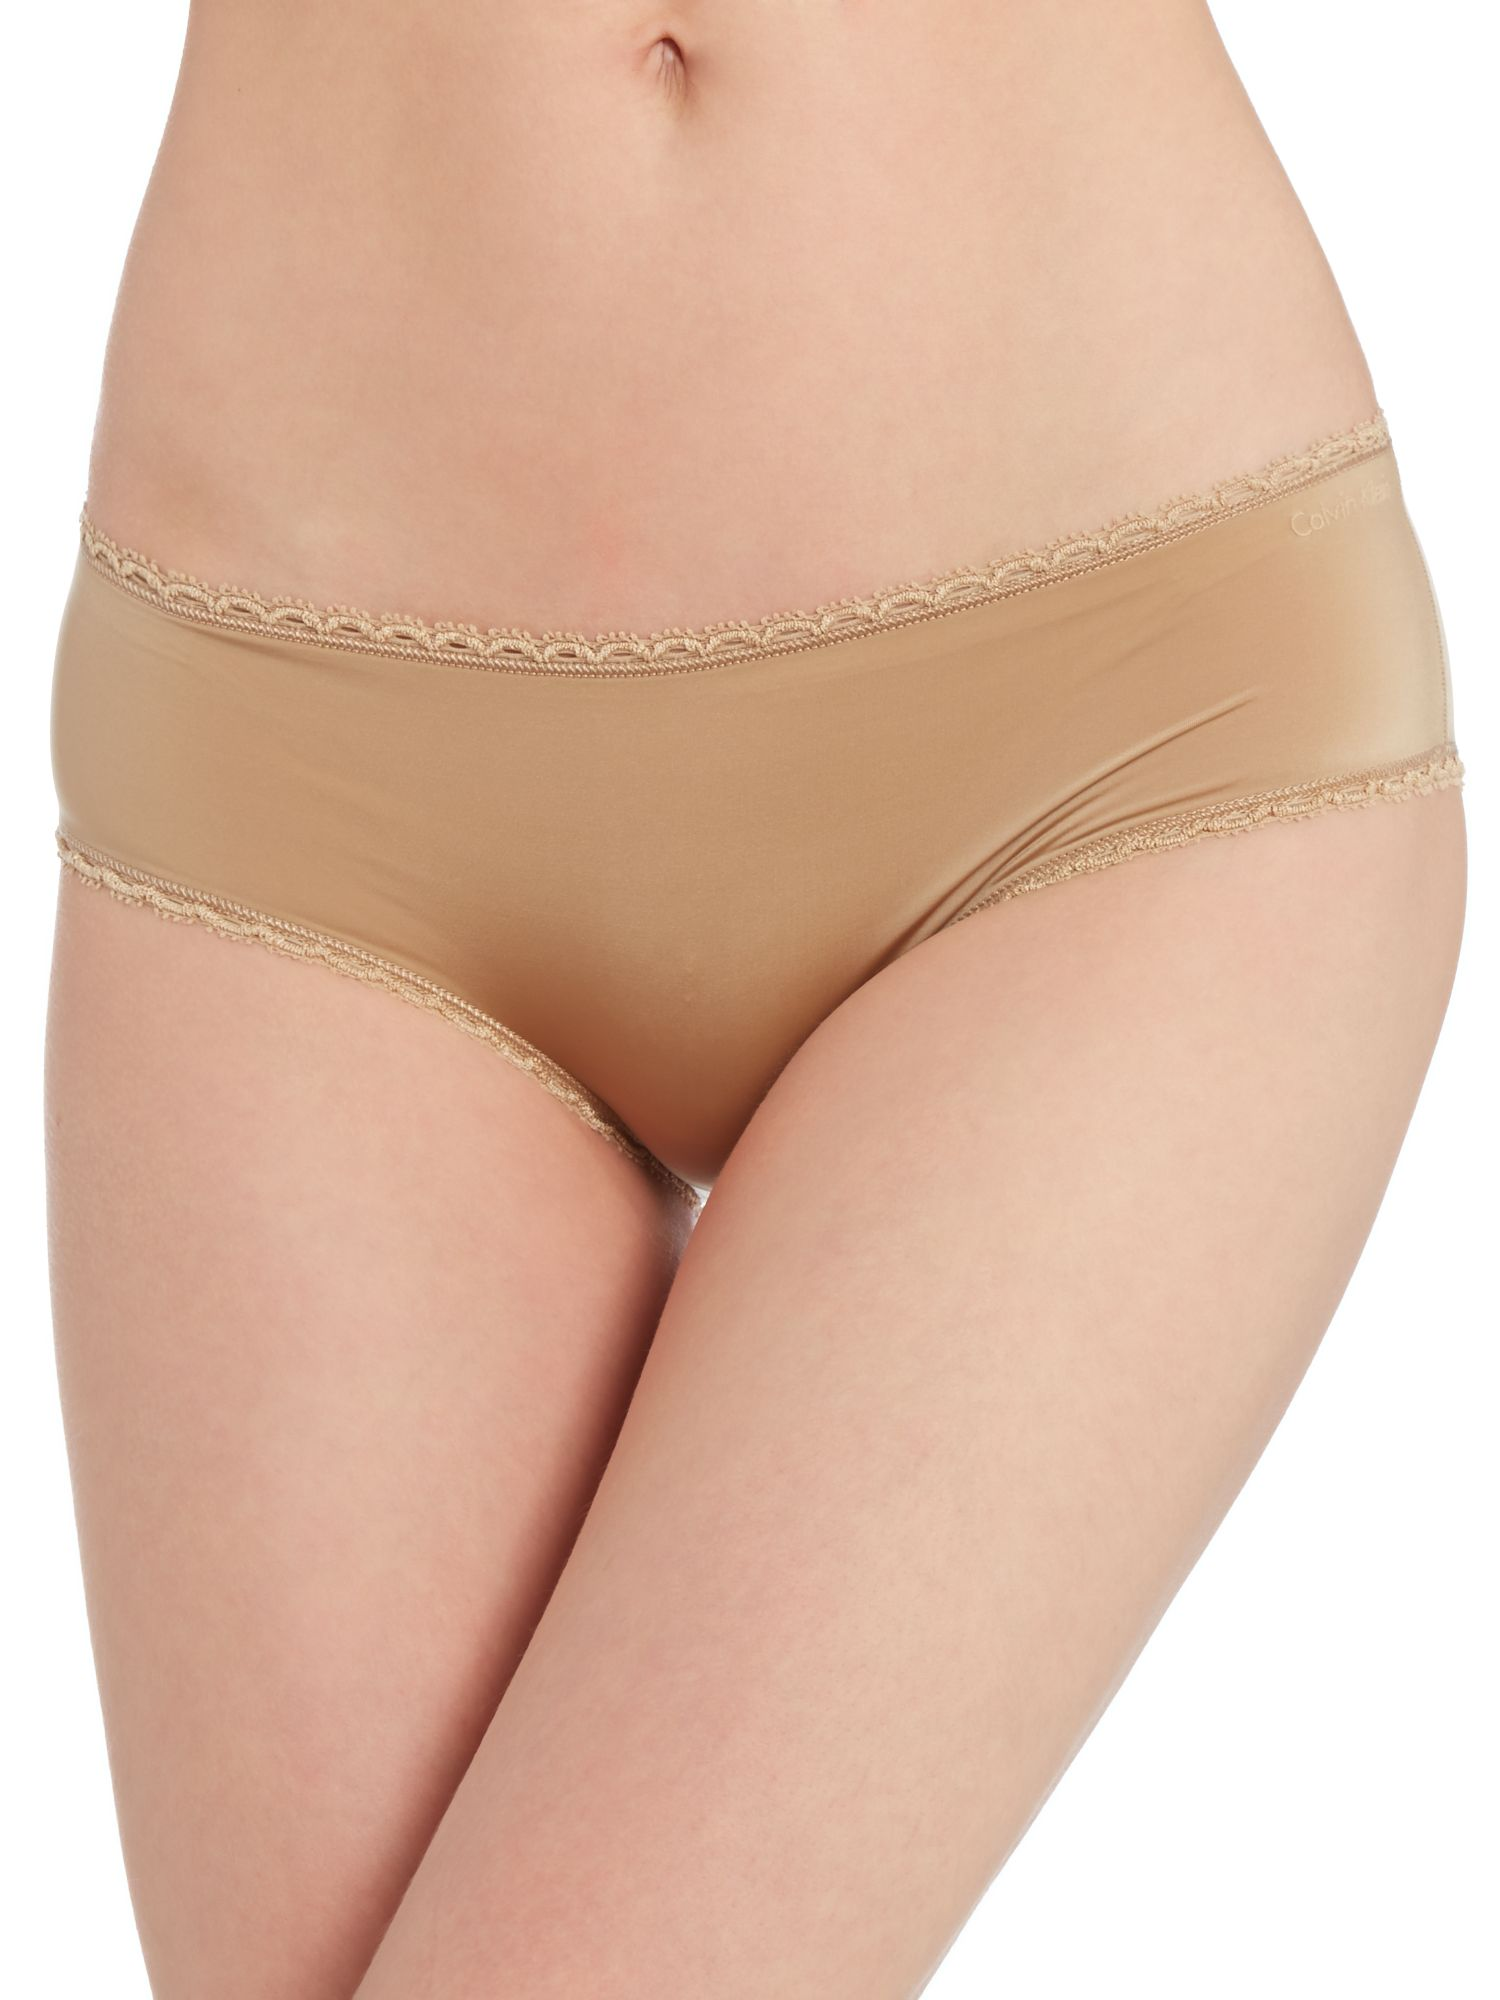 Seductive Comfort hipster brief